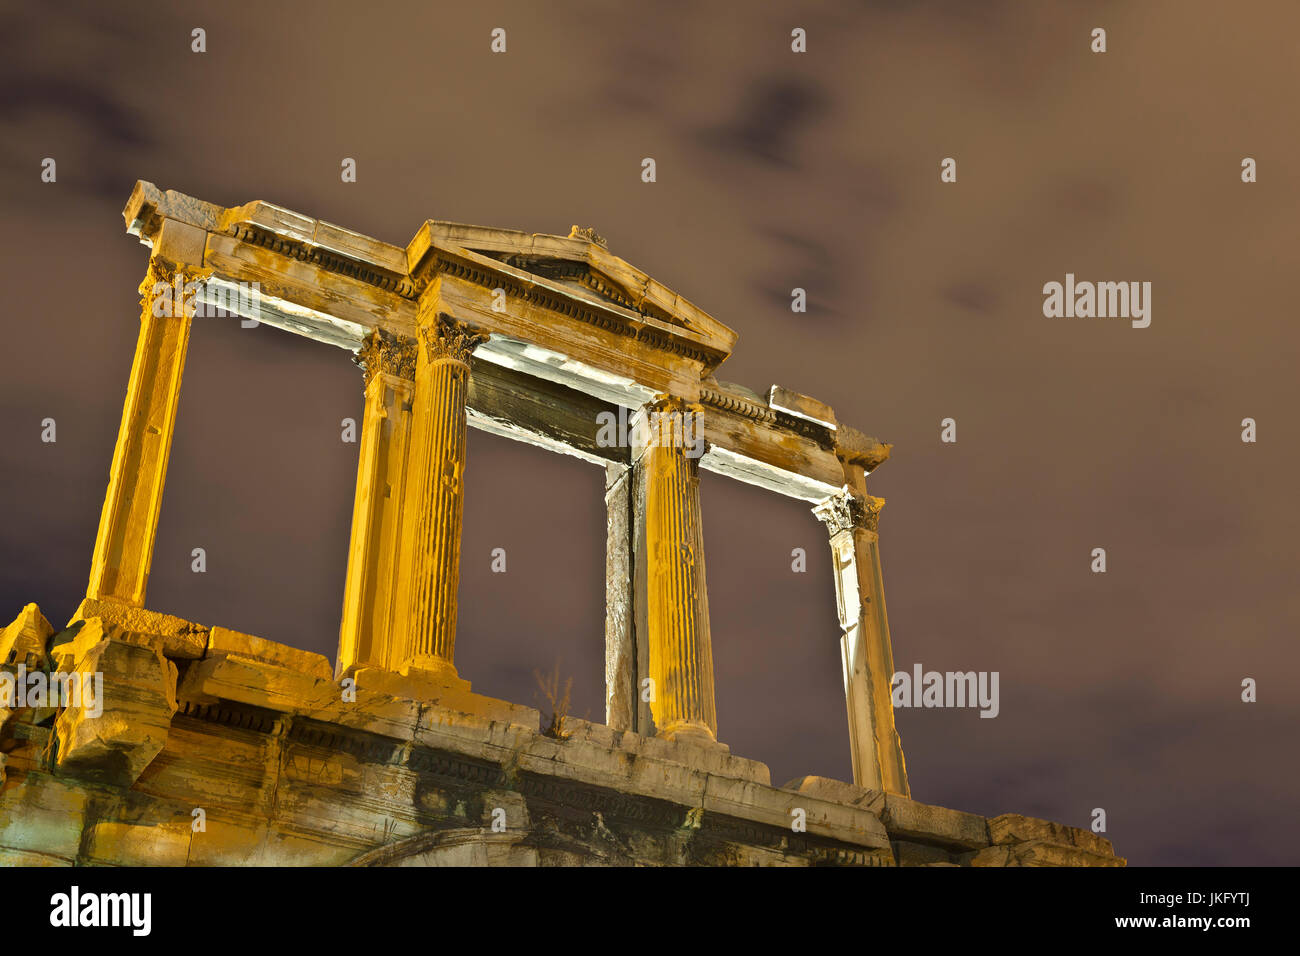 The upper part of the Hadrian's Arch, in the historic centre of Athens, Greece. - Stock Image